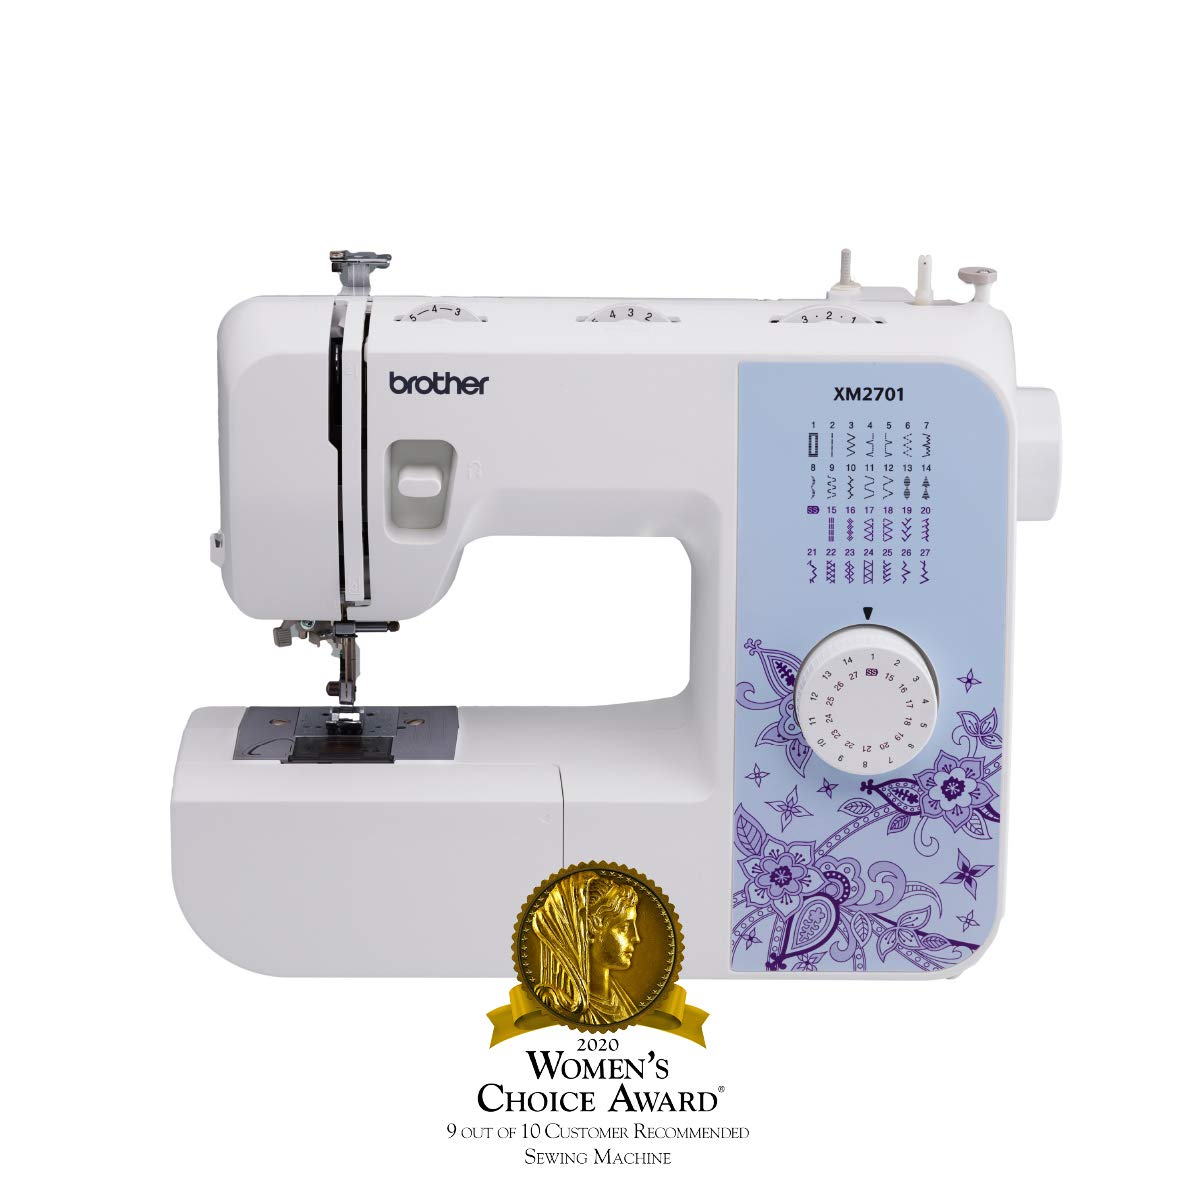 Brother Sewing Machine, XM2701, Sewing Machine with 27 Stitches